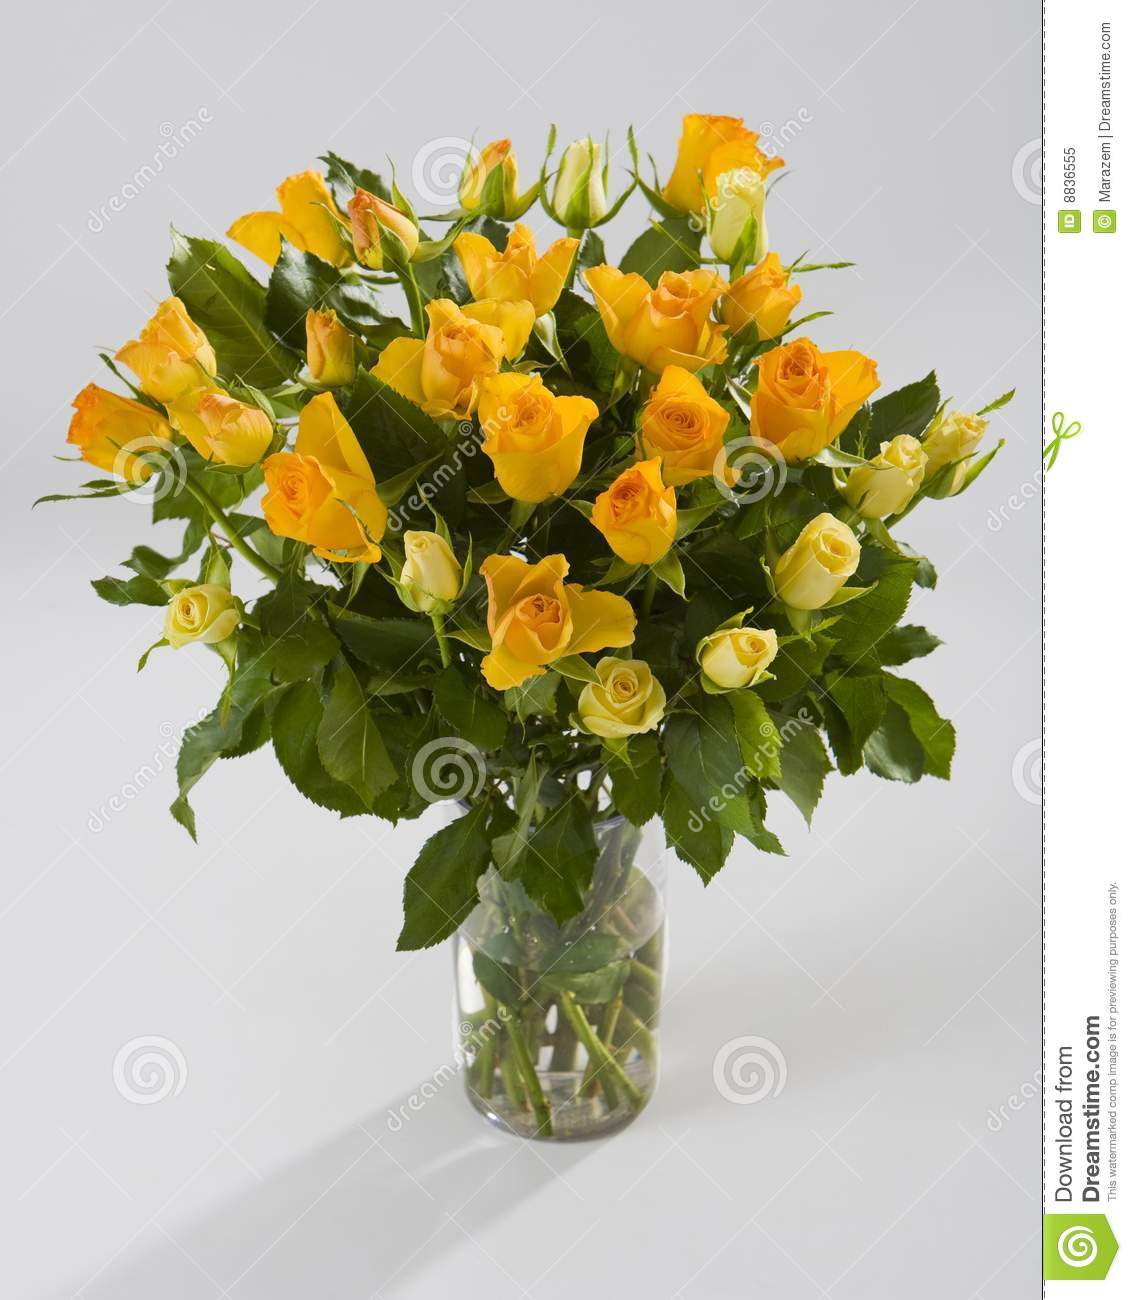 Bouquet Of Yellow Roses Stock Image Image Of Rose Posy 8836555